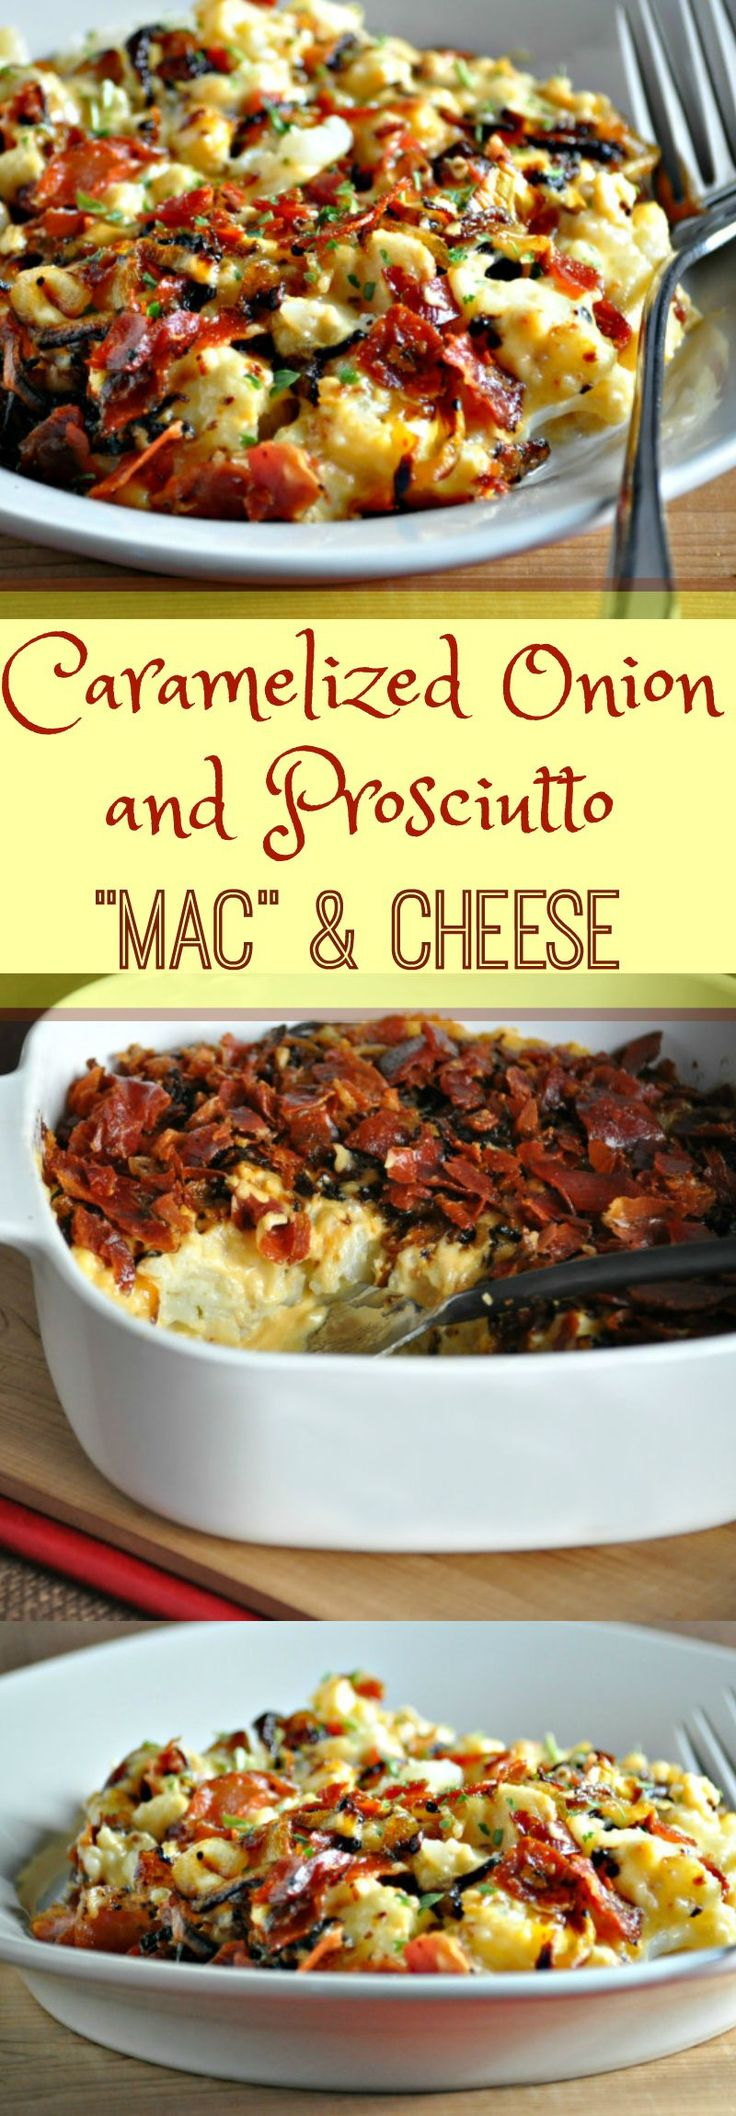 Caramelized Onion and Prosciutto Mac and Cheese - Low Carb, Gluten ...